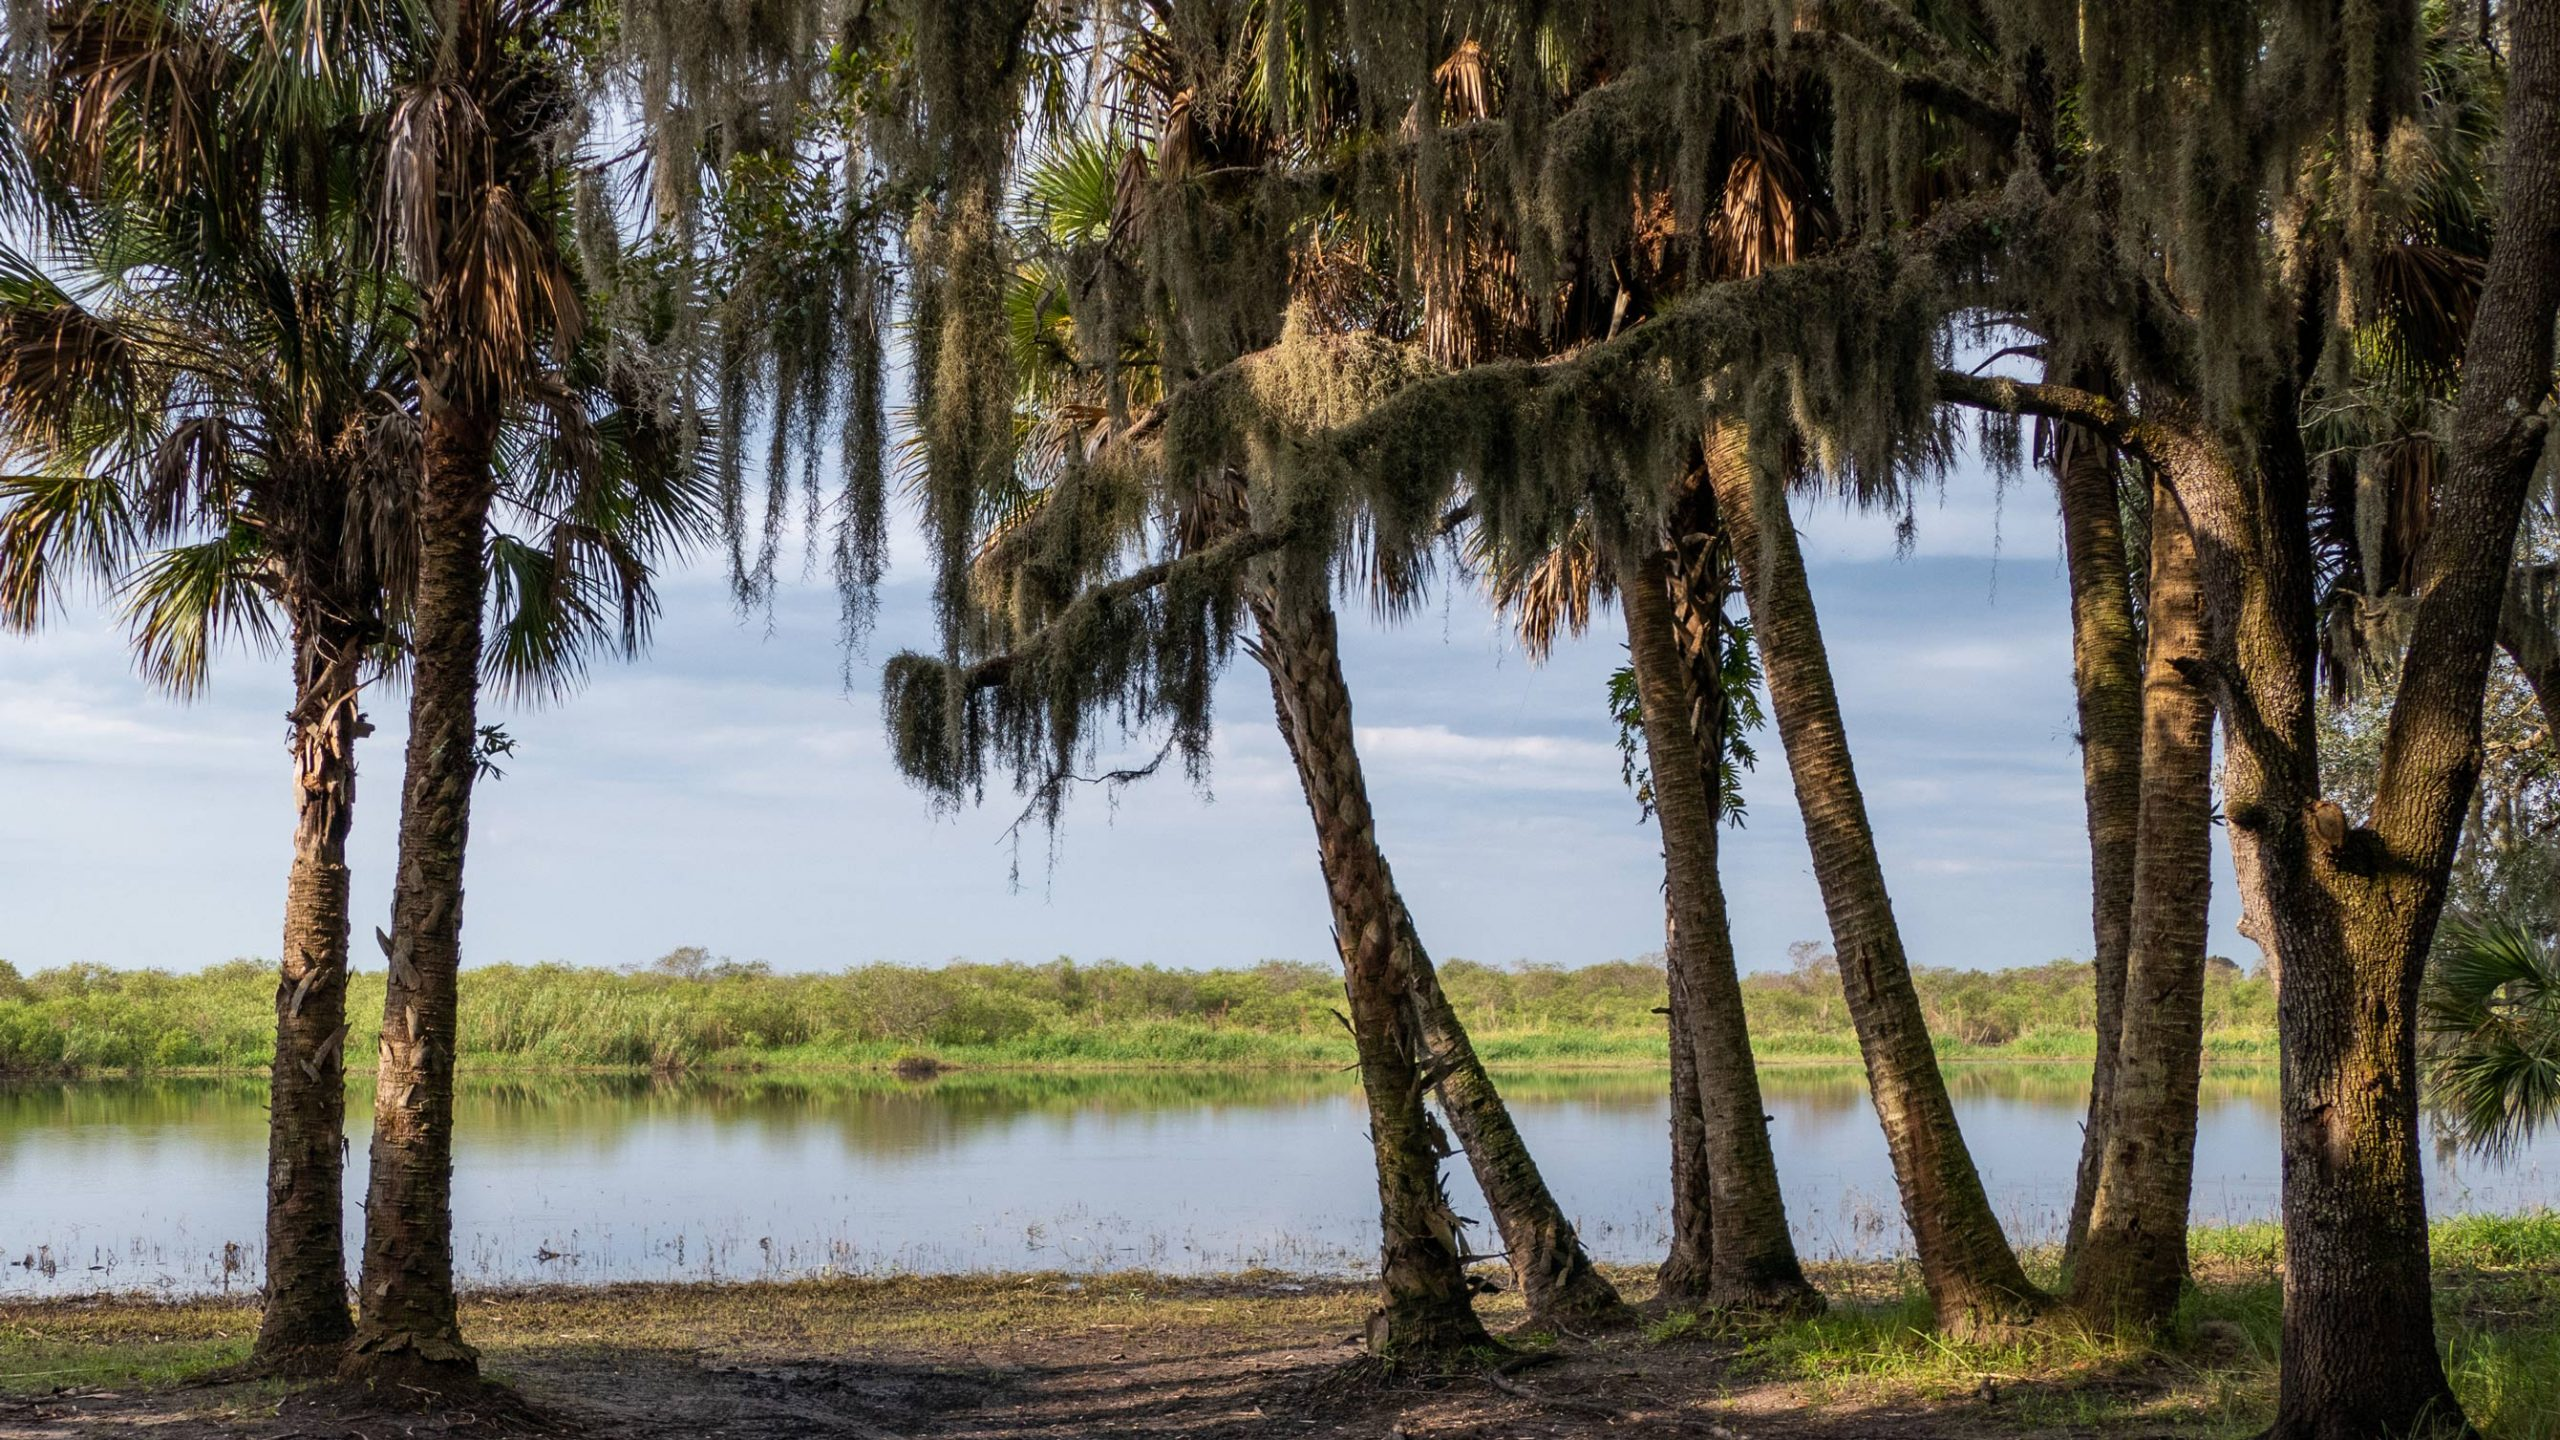 A line of palm trees by a lake